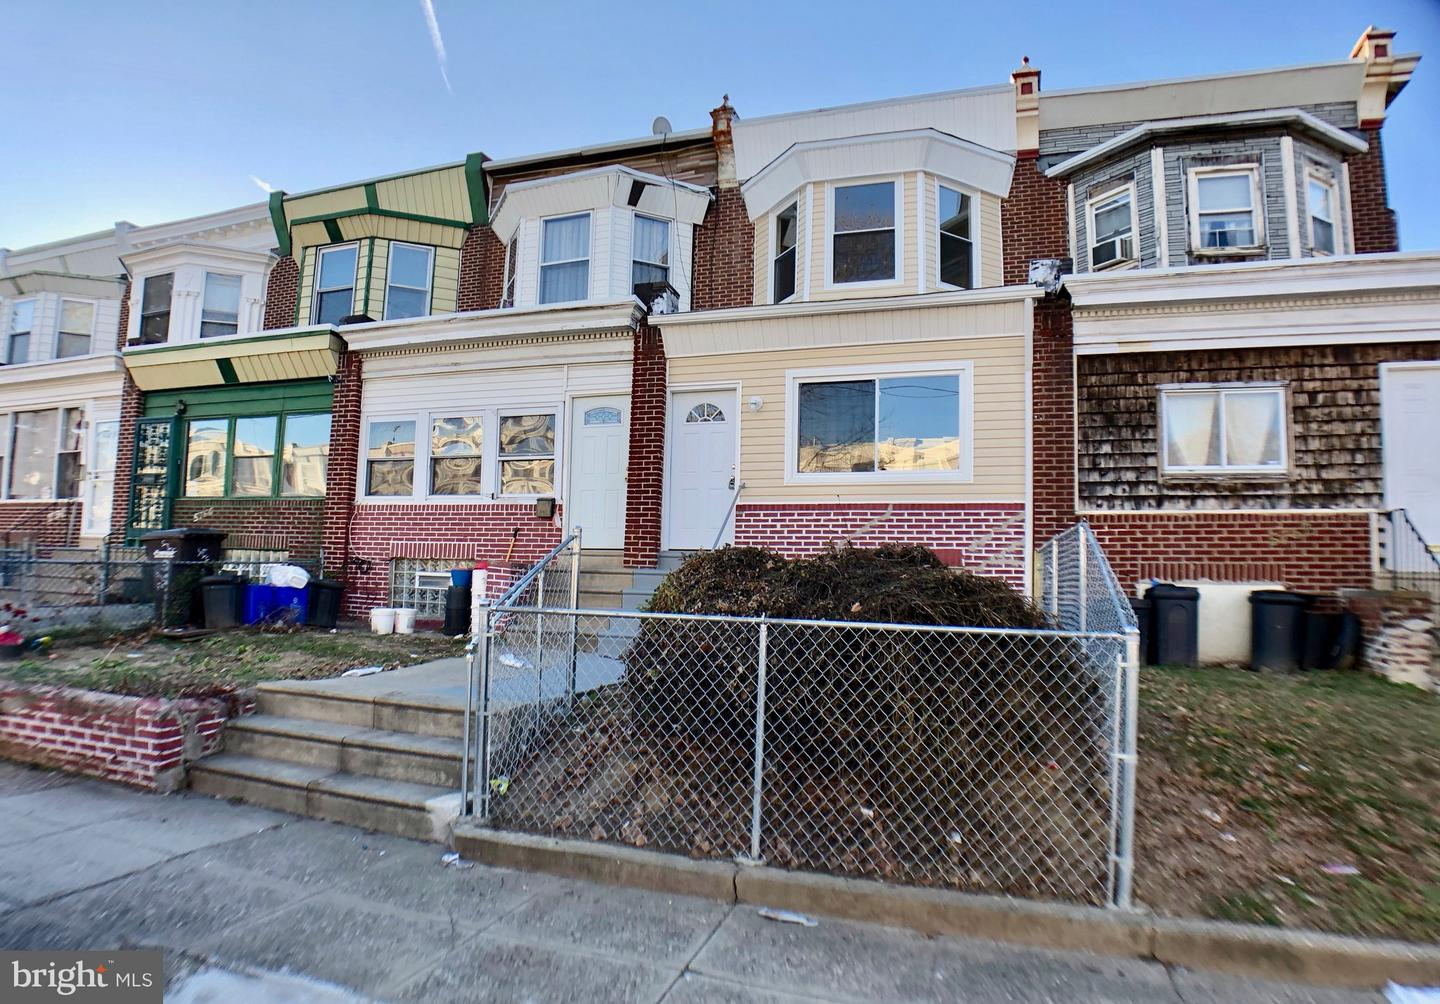 5760 N 6TH Street Philadelphia, PA 19120